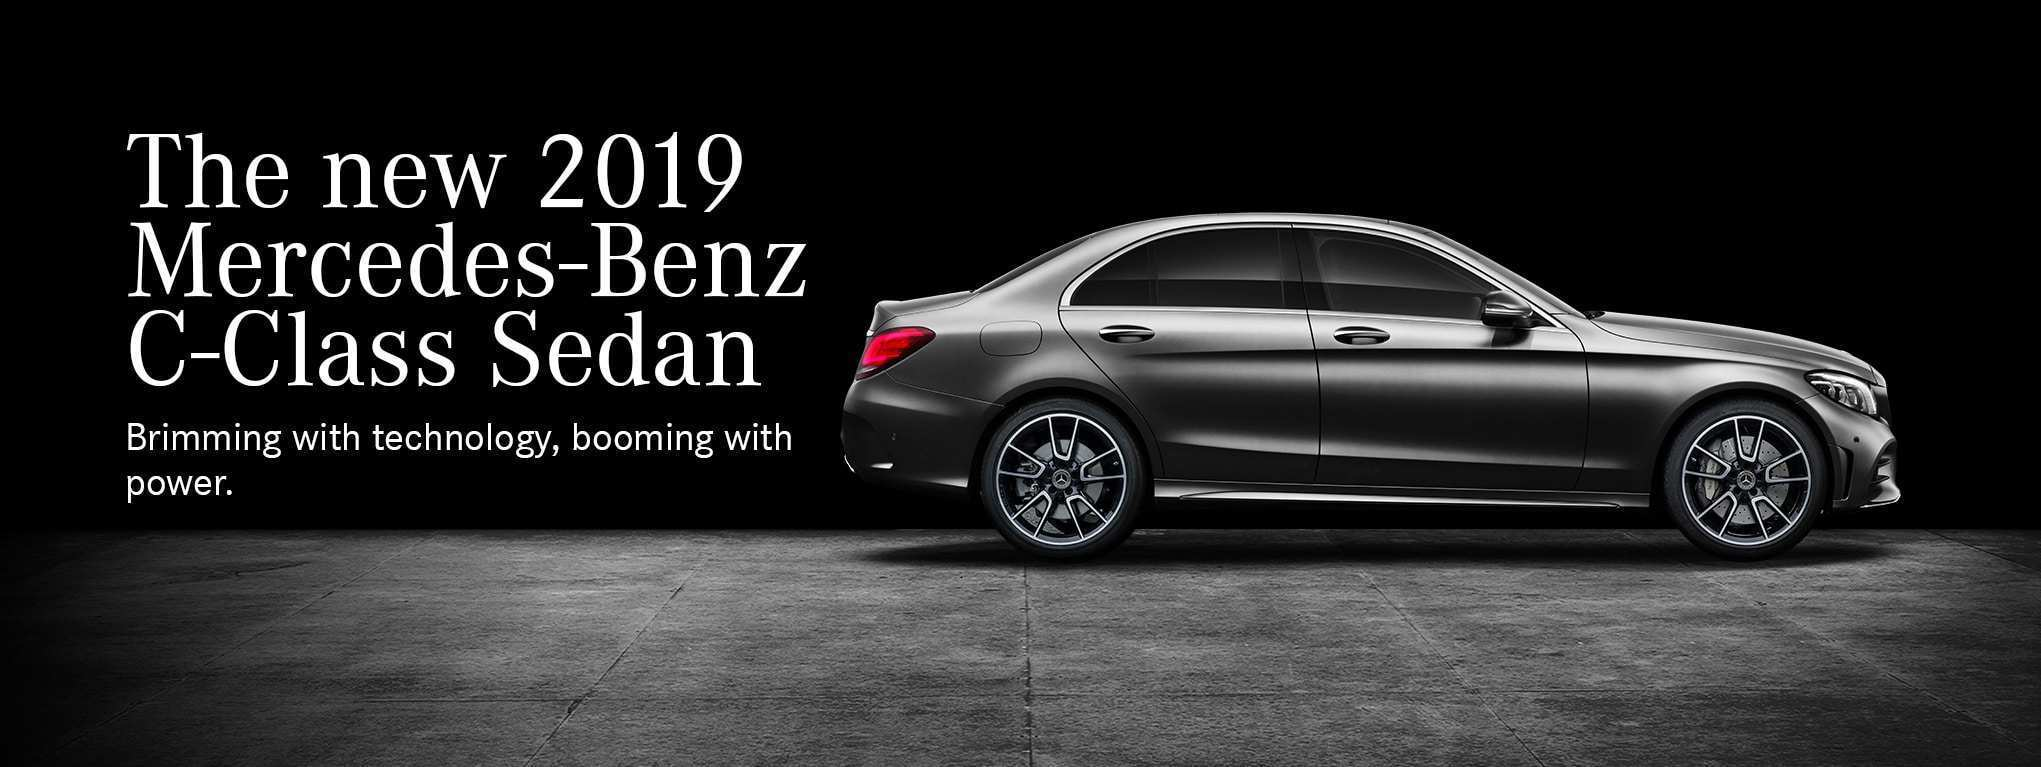 18 Great The New Mercedes C Class 2019 Pictures with The New Mercedes C Class 2019